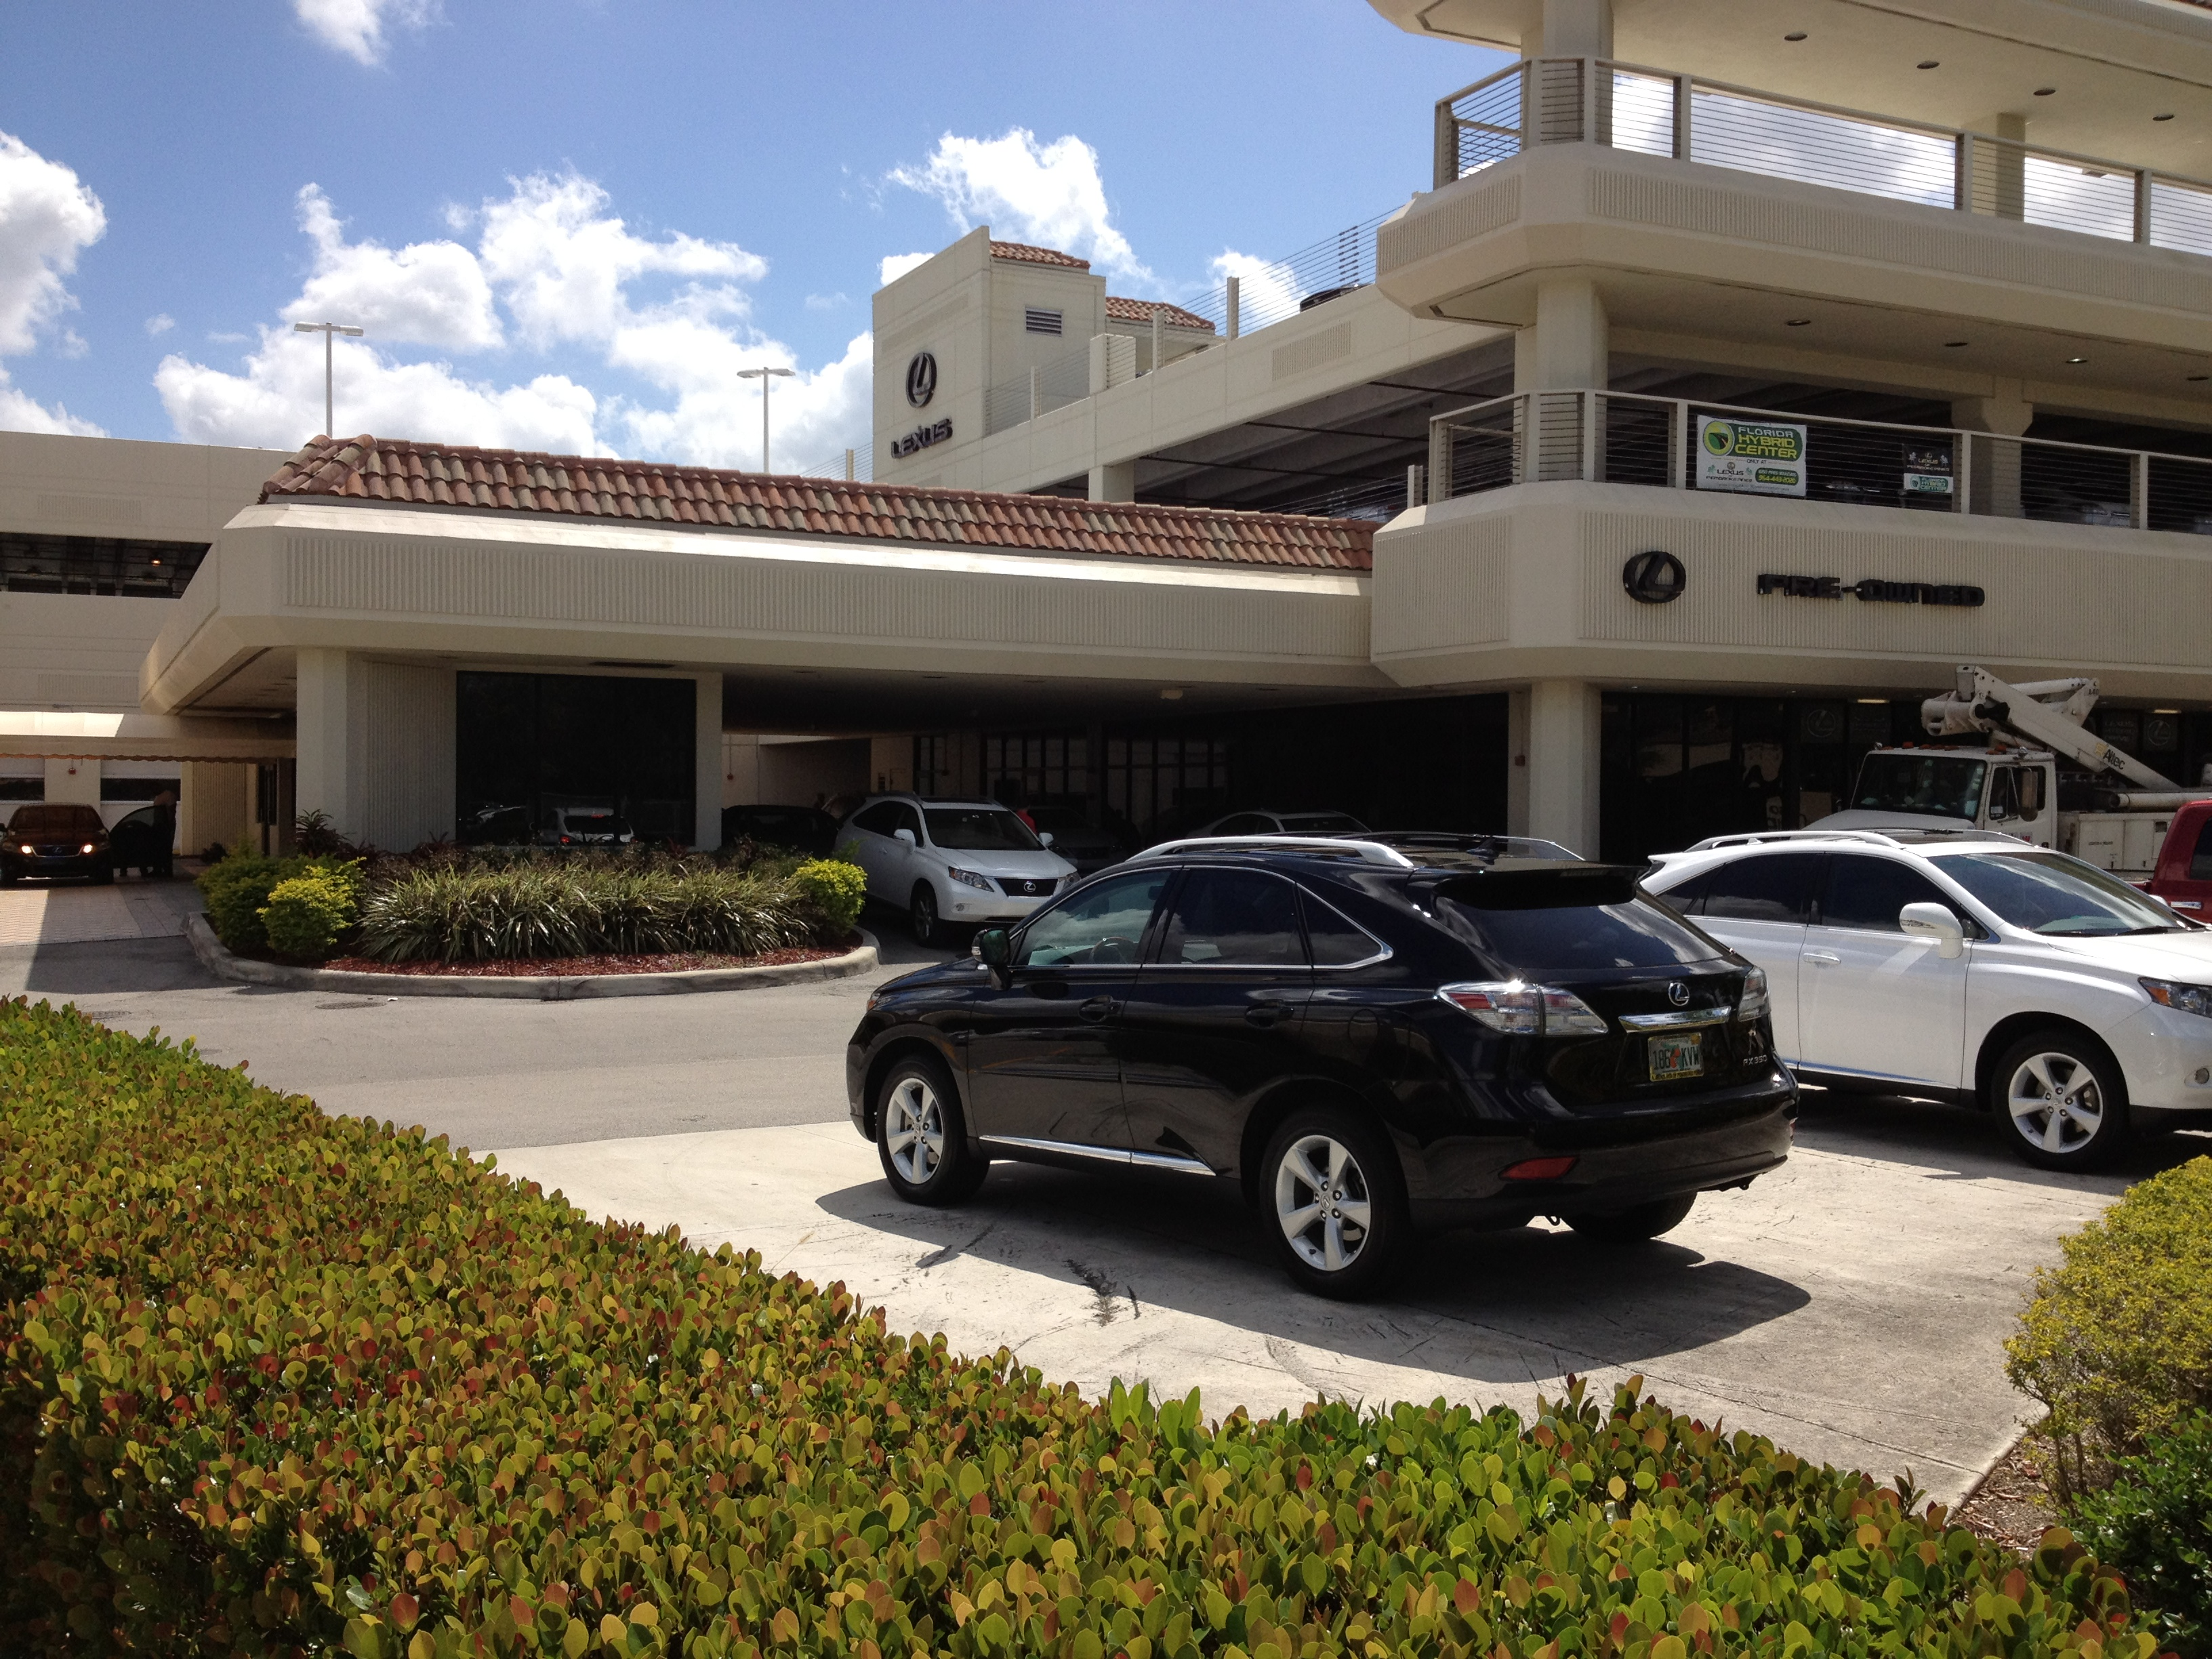 Lexus Of Pembroke Pines Pembroke Pines Florida Fl